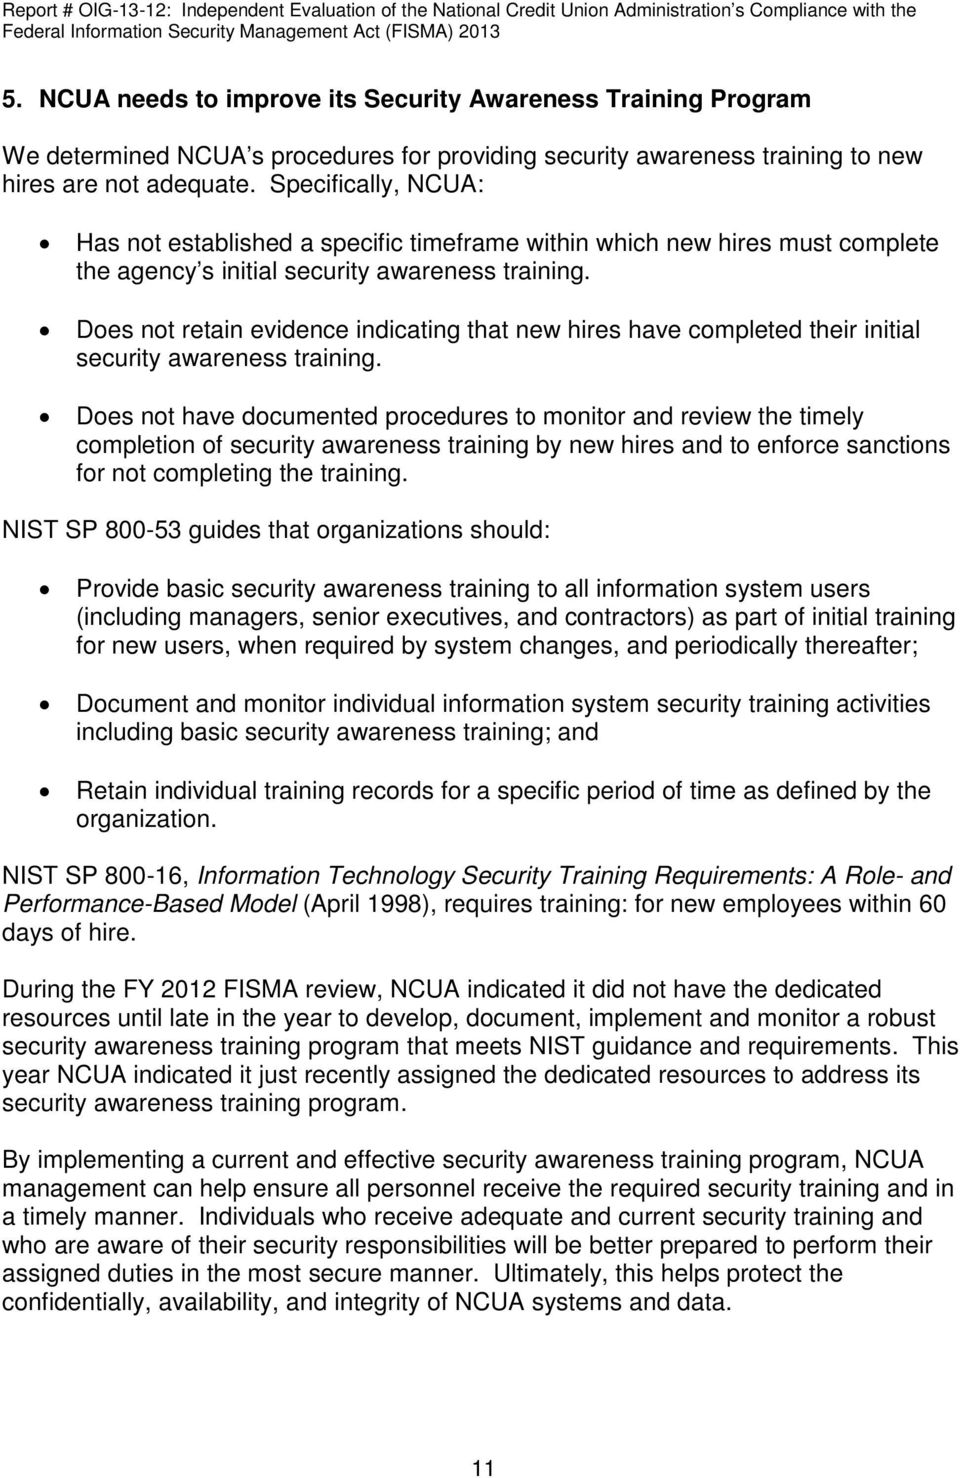 Does not retain evidence indicating that new hires have completed their initial security awareness training.